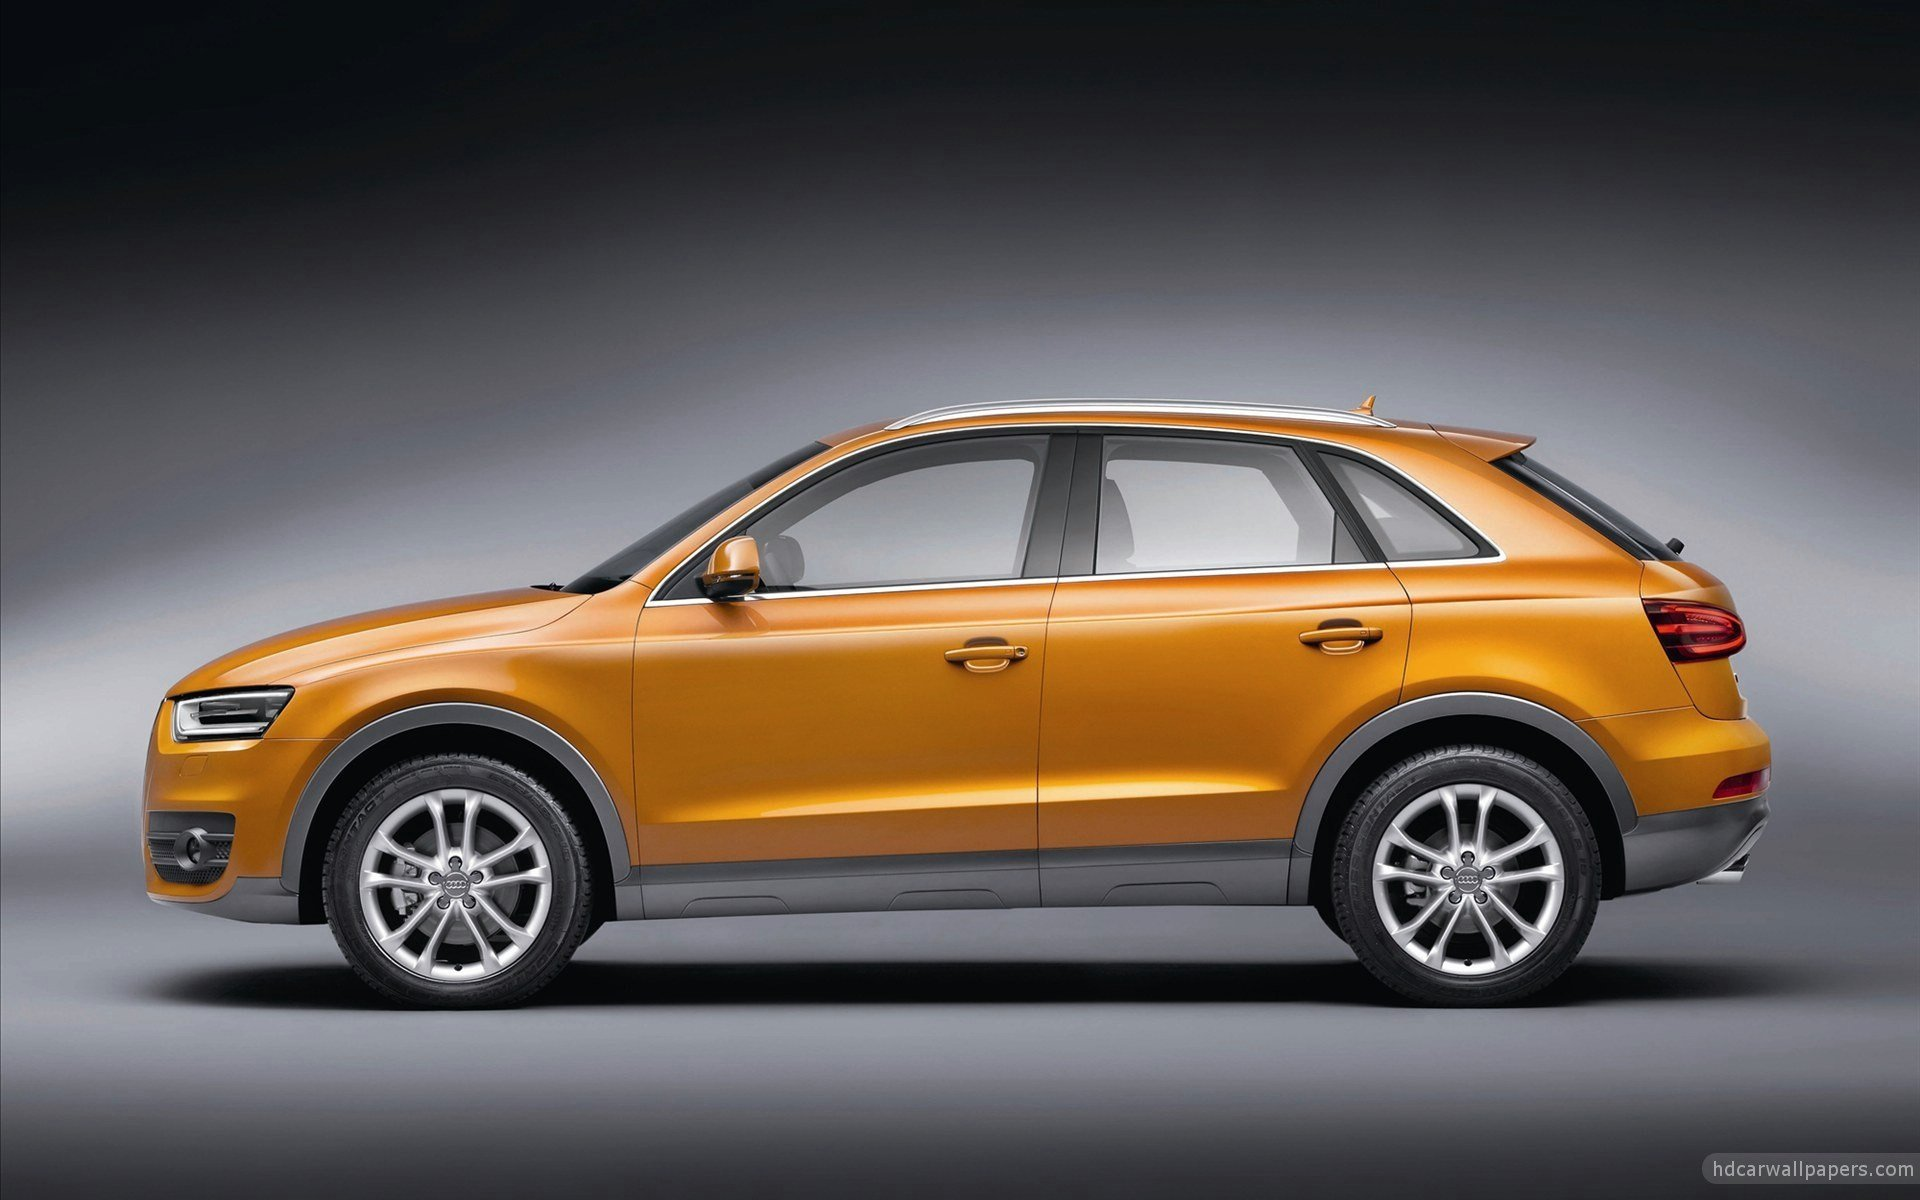 Latest 2012 Audi Q3 5 Wallpaper Hd Car Wallpapers Id 2029 Free Download